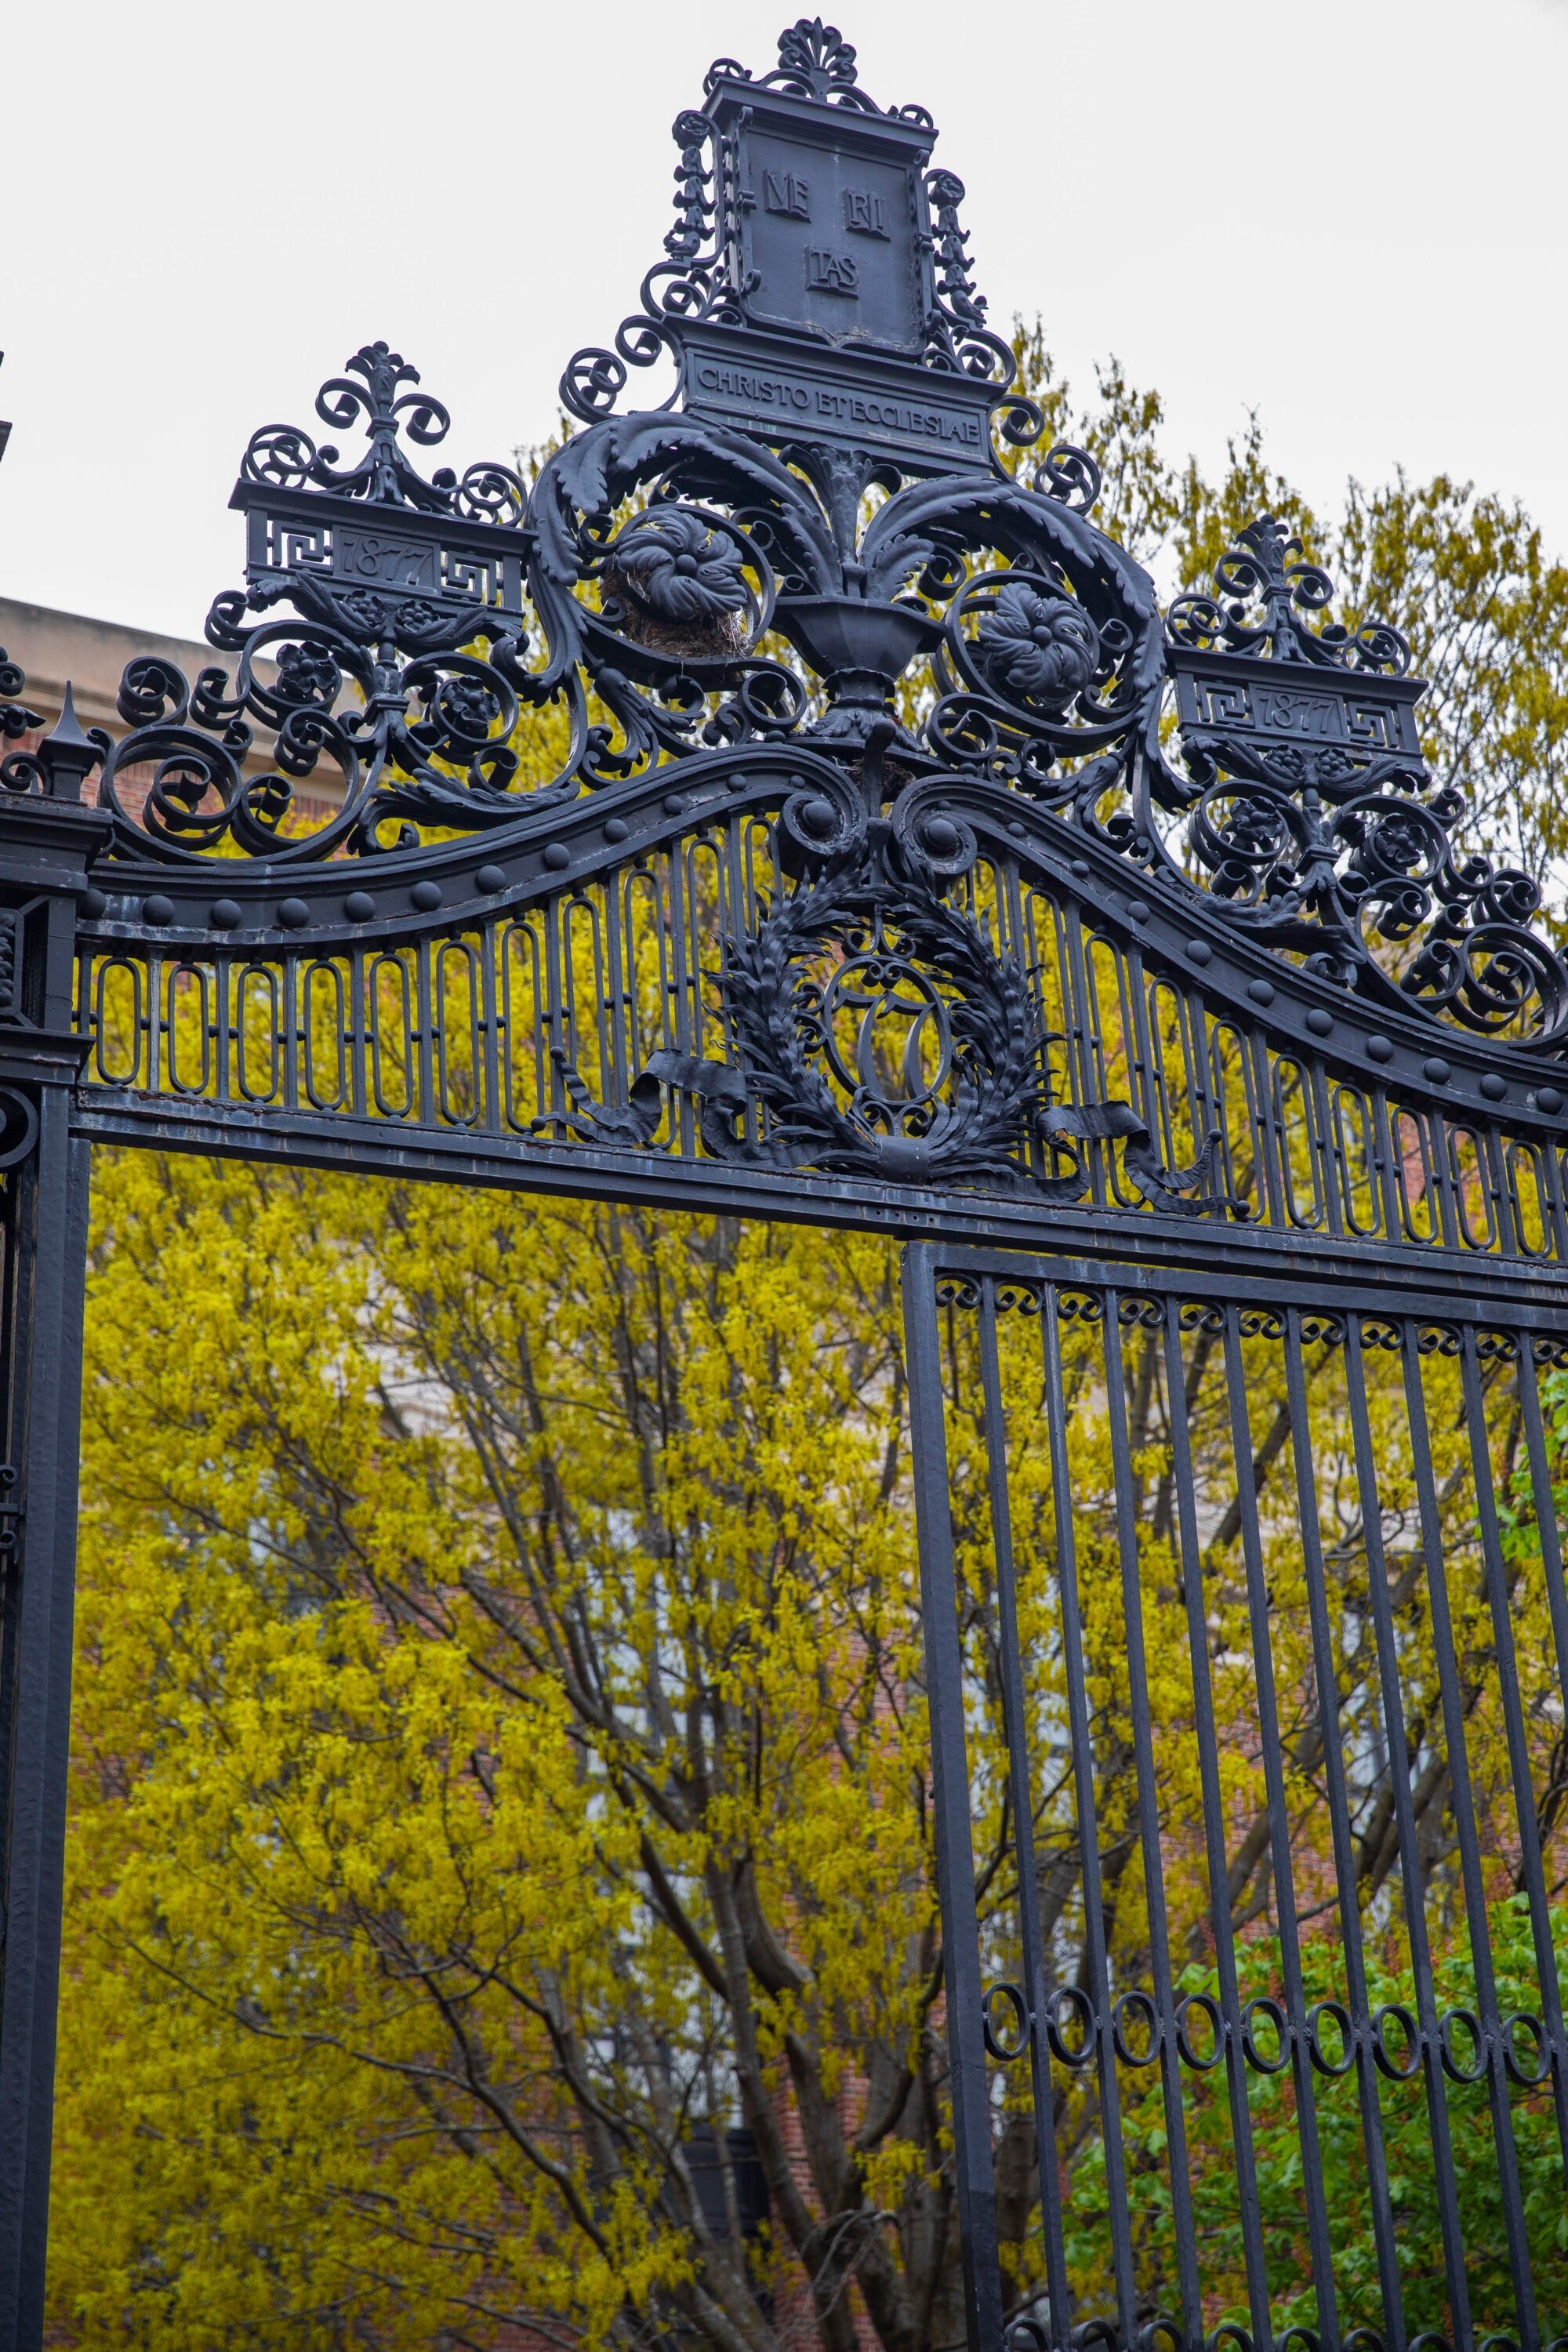 A yellow flowering tree behind the iron gates